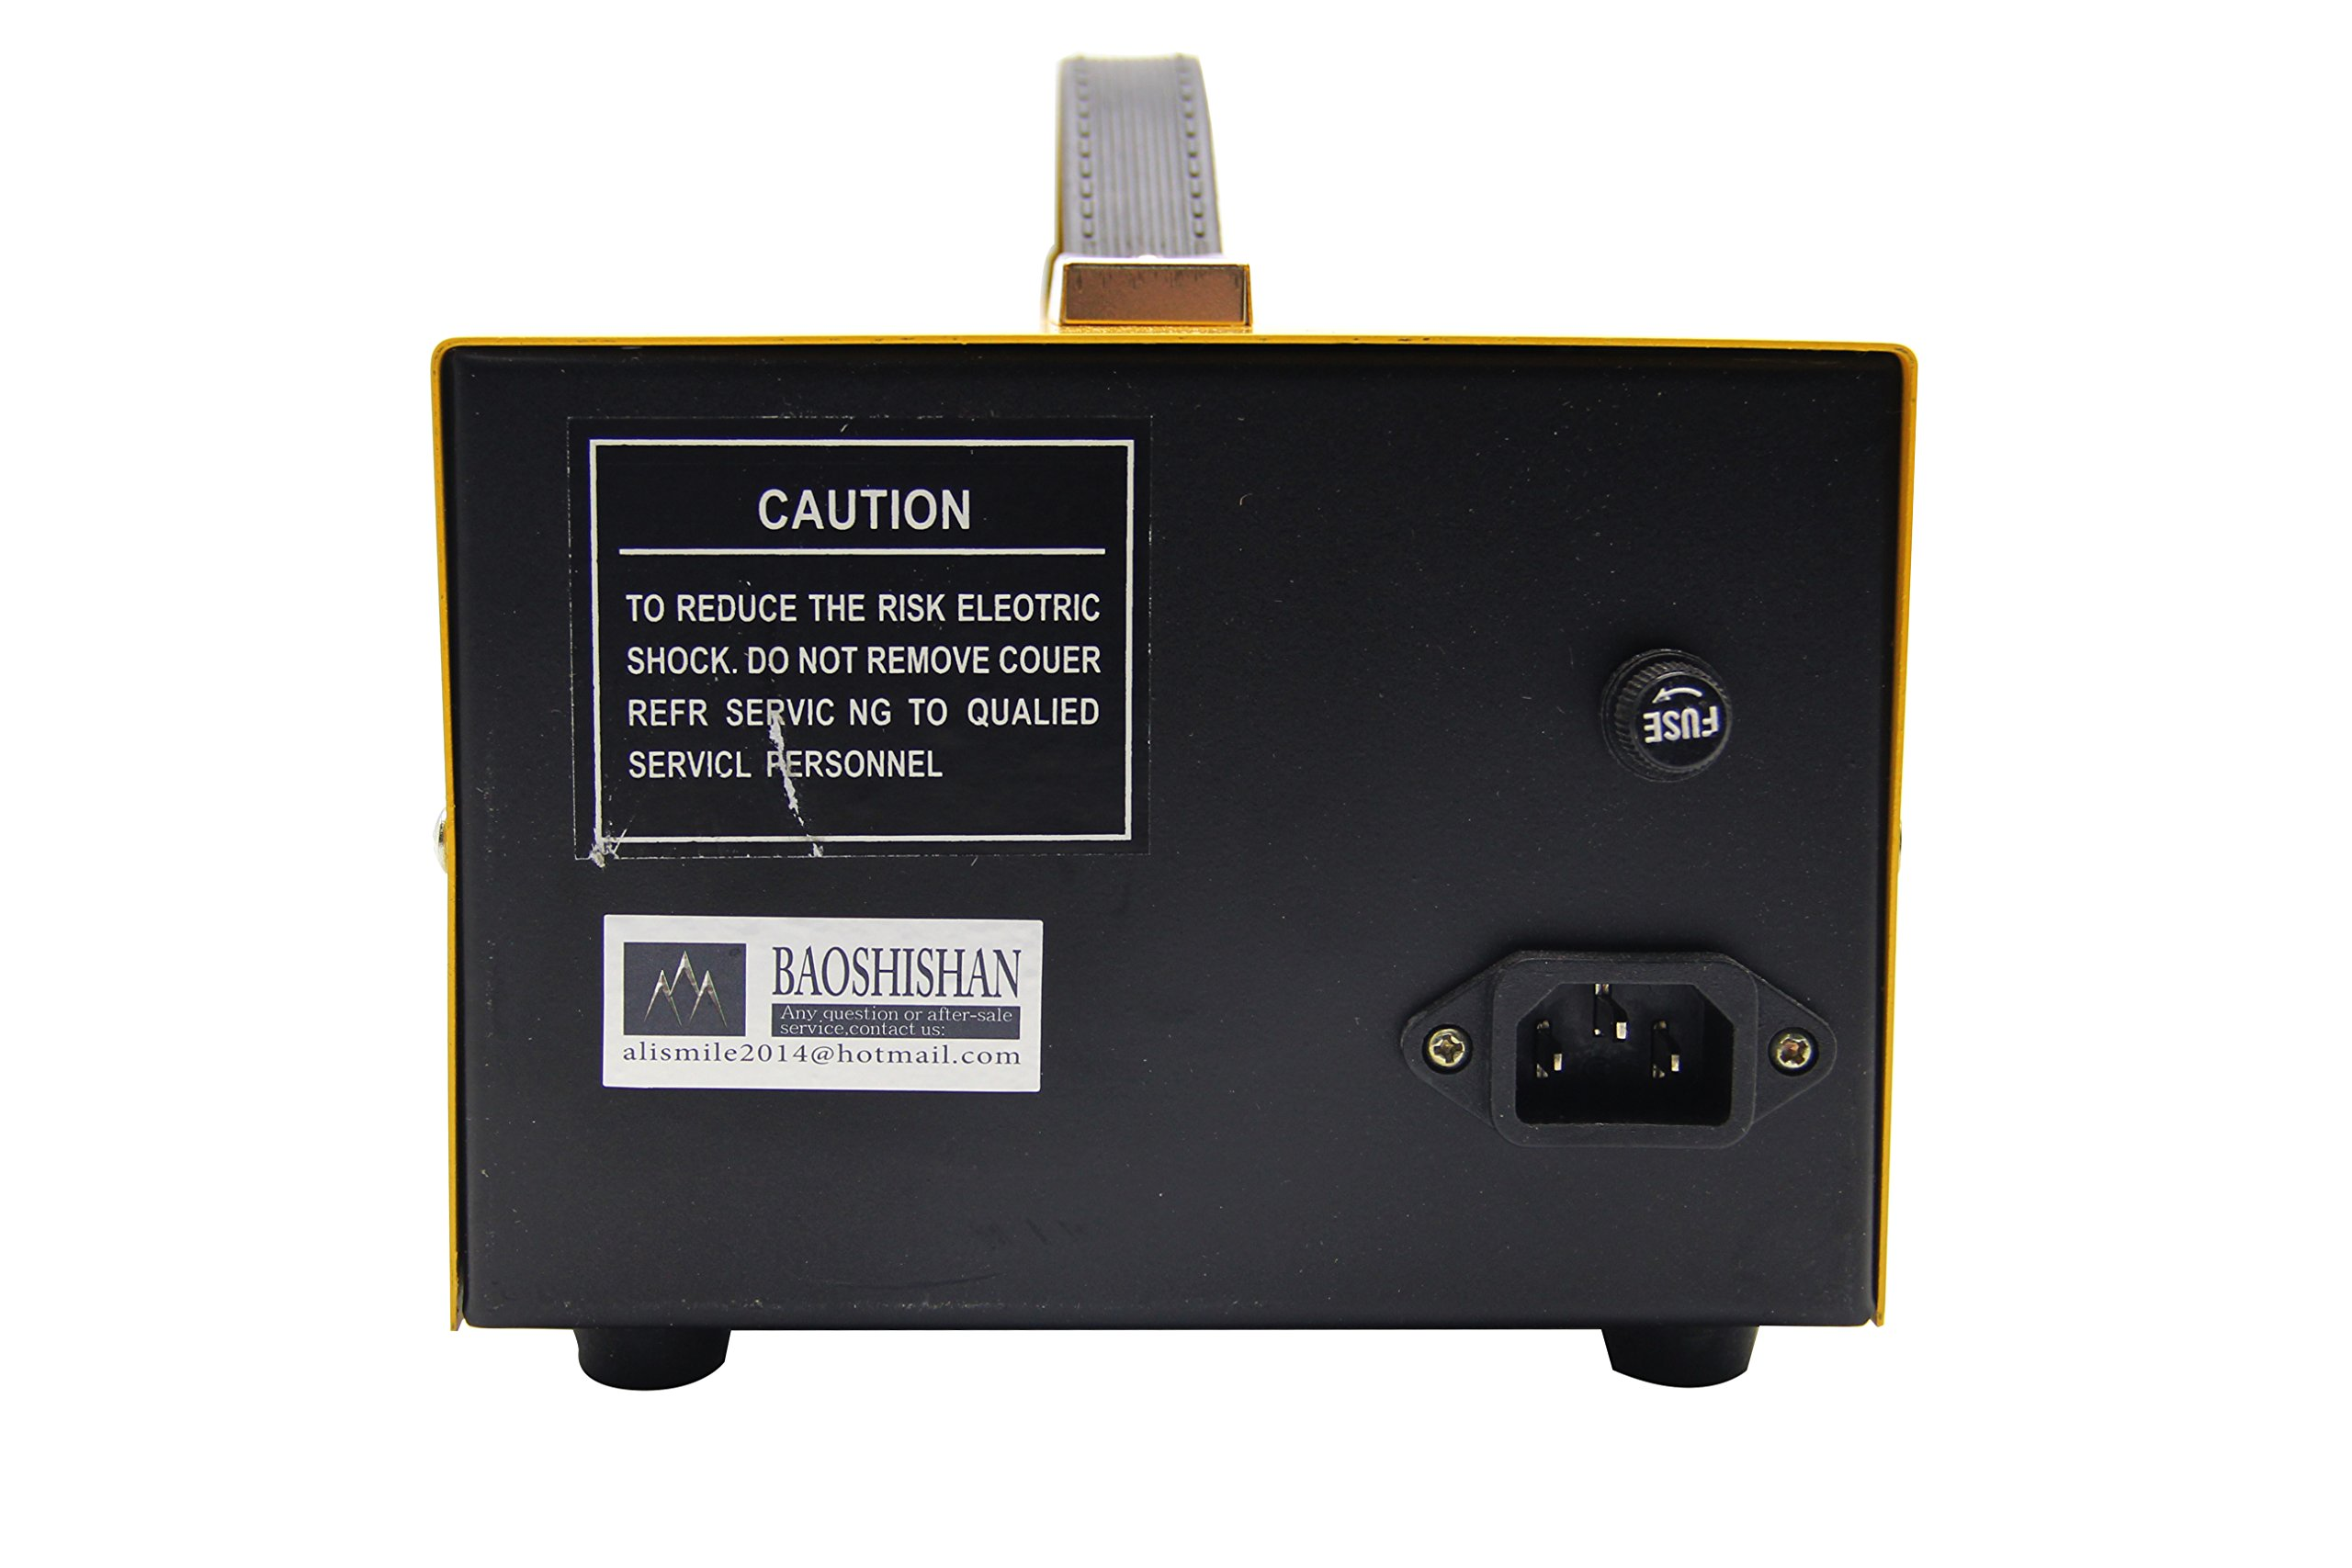 Pulse Sparkle Spot Welding Machine 200W Jewelry Welder for Necklace Gold Silver Platinum 110V by BAOSHISHAN (Image #5)